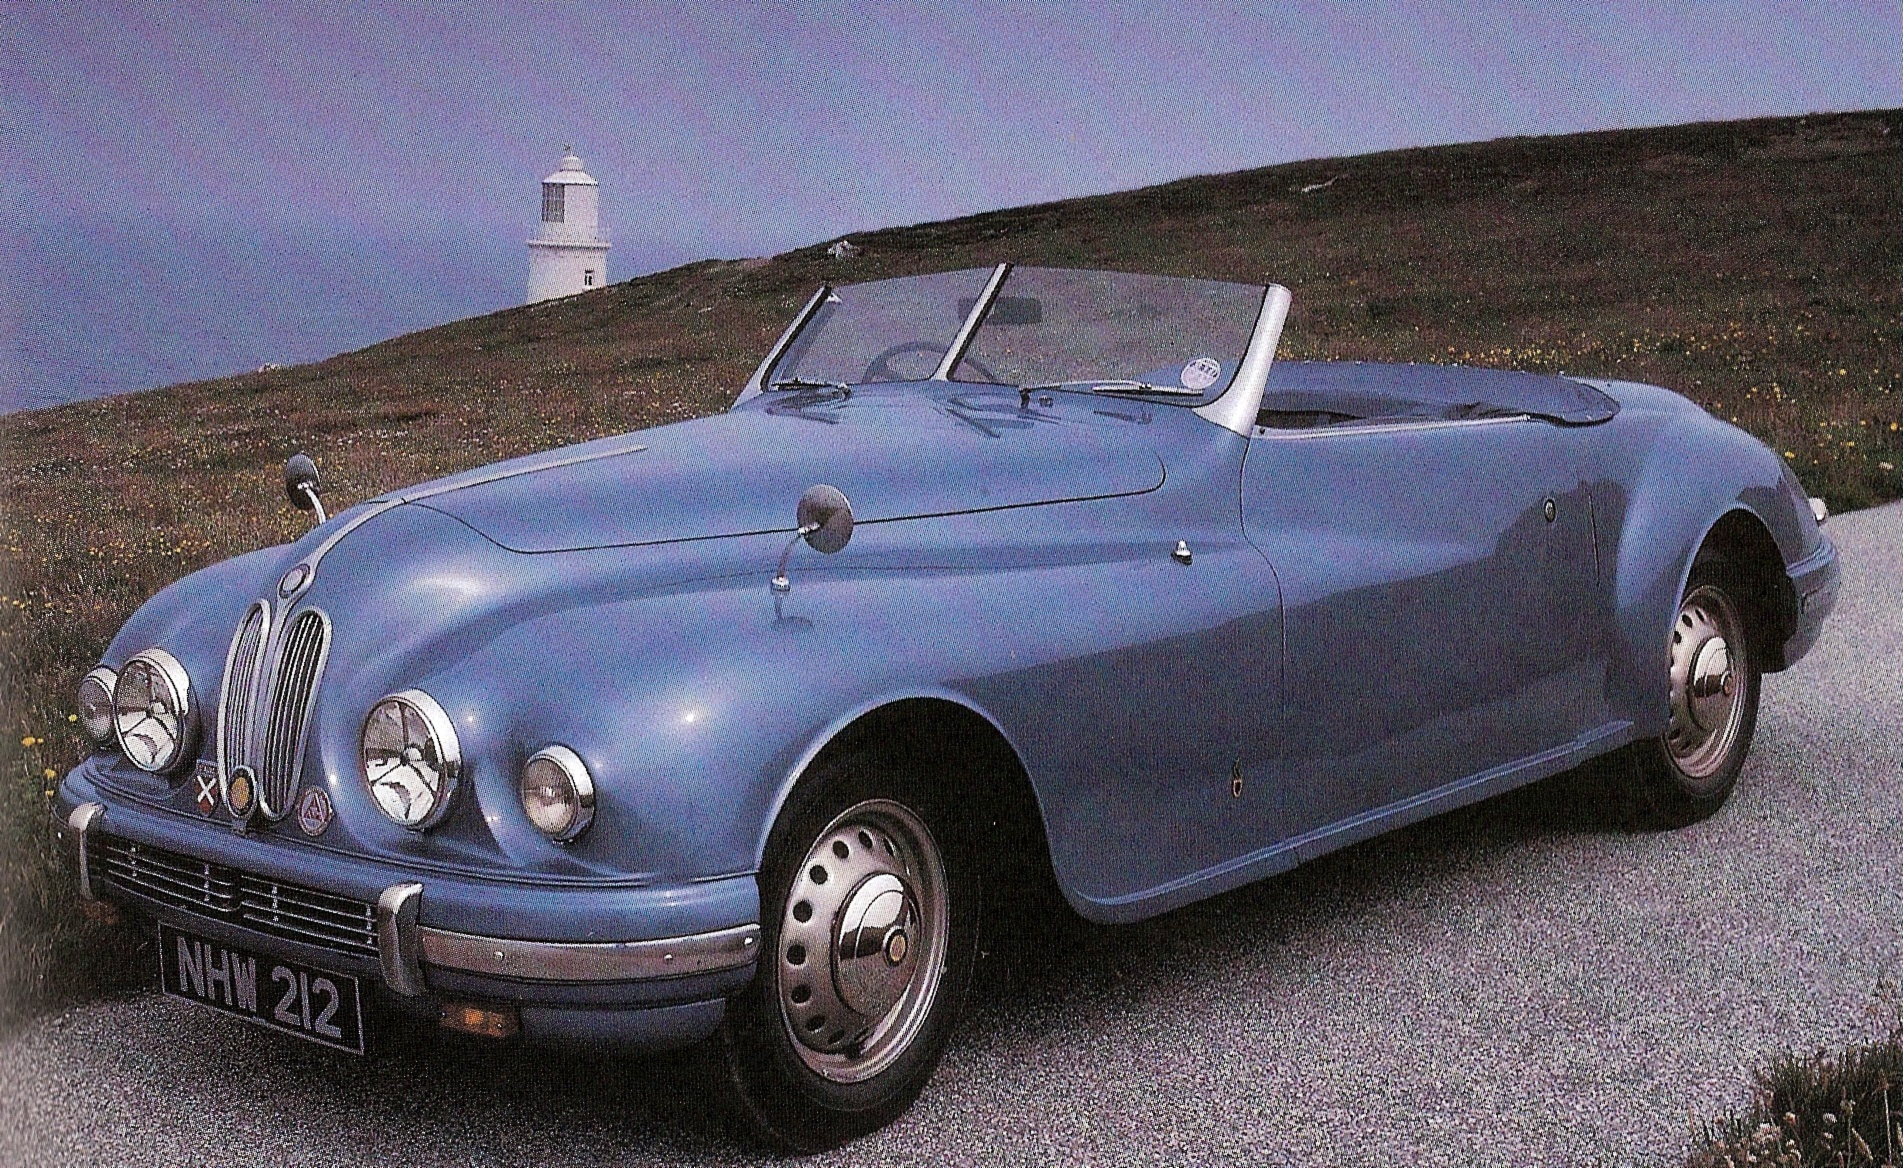 In 1950 Bristol introduced the 402, which was an evolutionary convertible ...